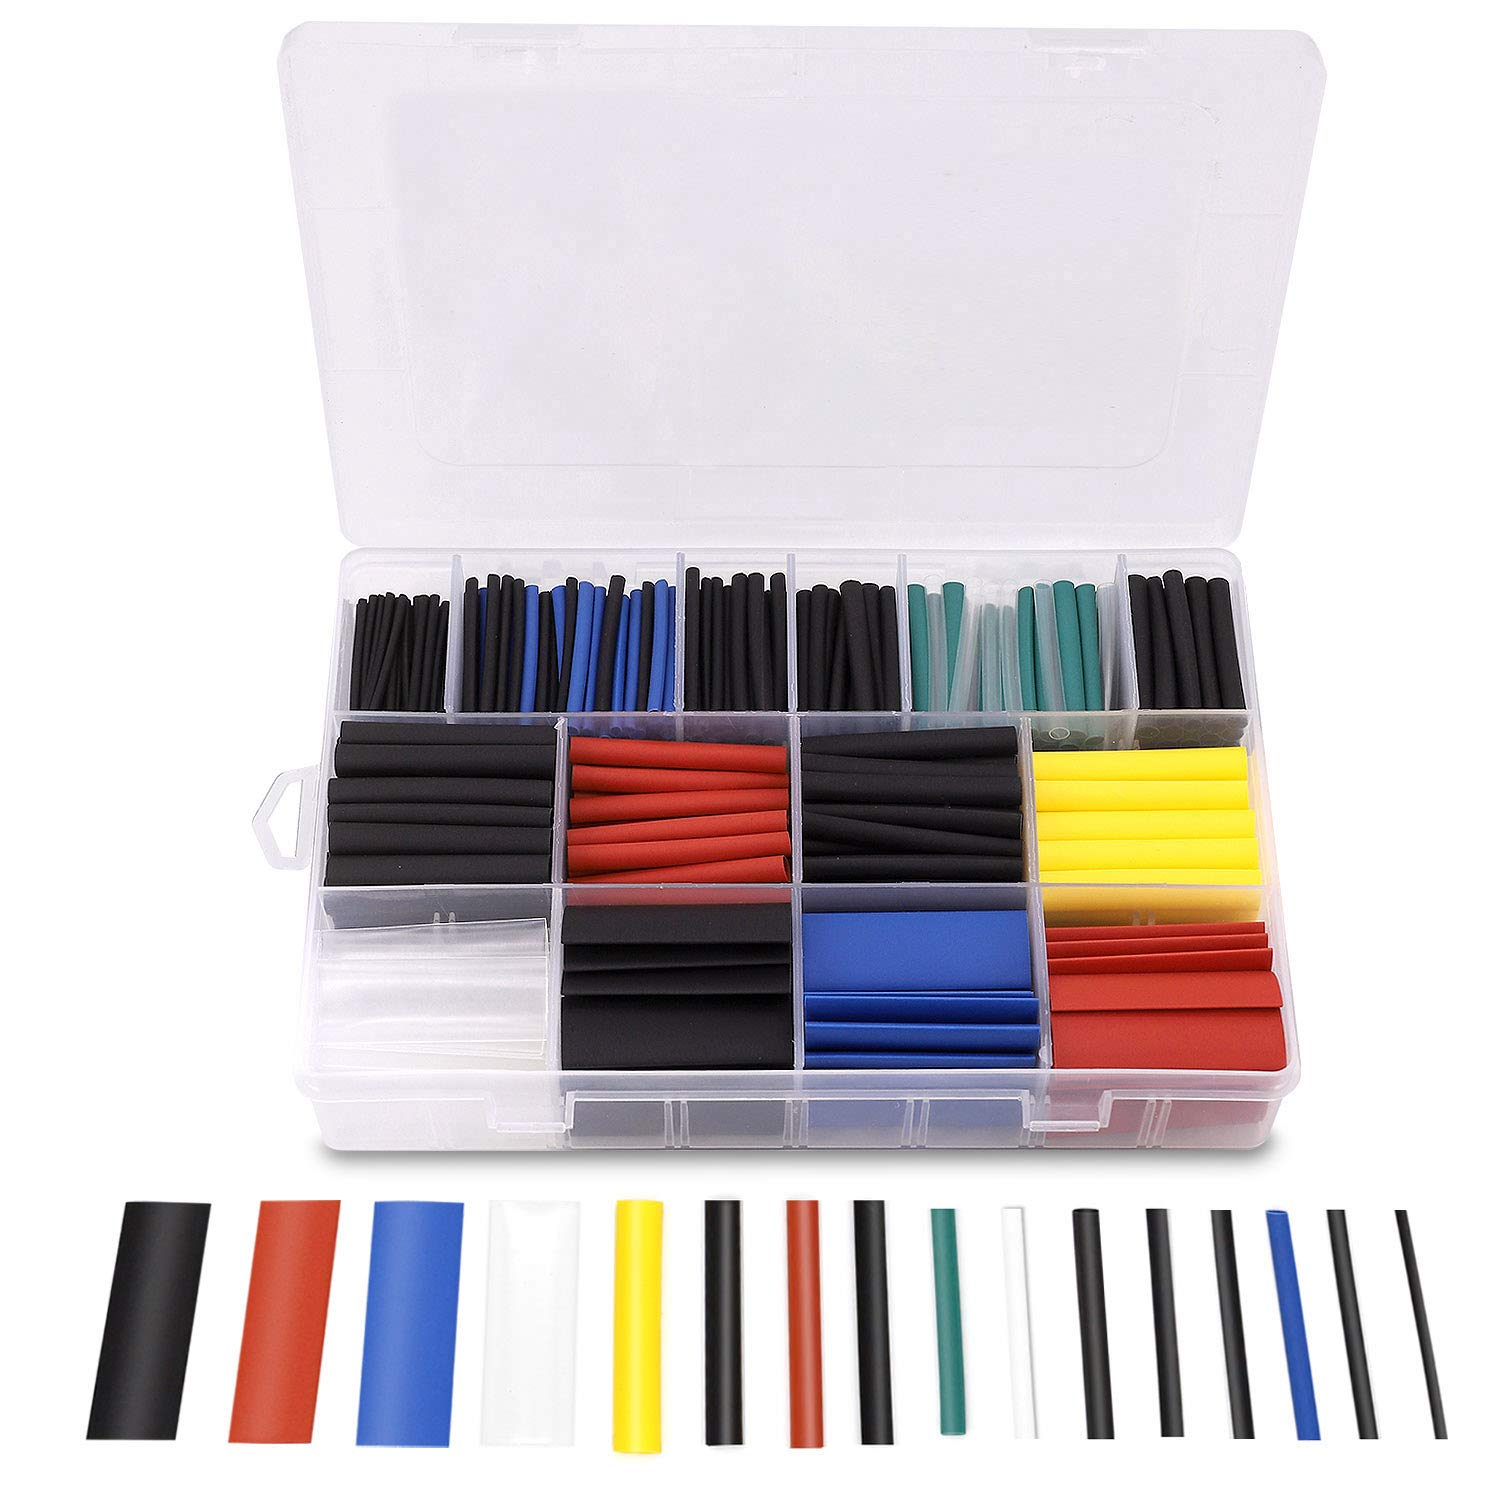 Gaine Thermor/étractable 6 Couleurs 11 Tailles Ratio 2:1 580 Pcs Tube Thermor/étractable 1-10mm Kit